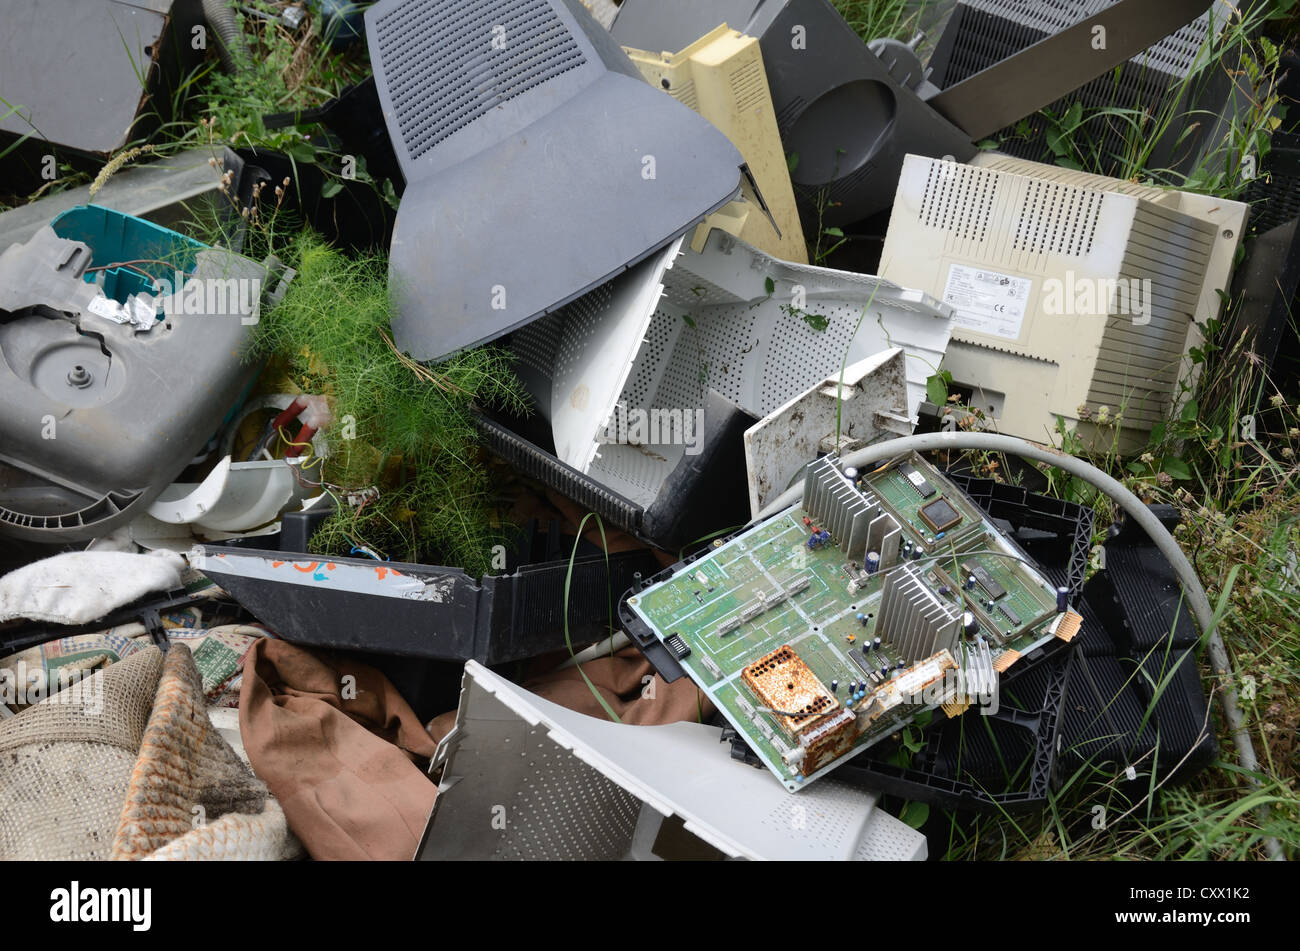 Discarded Computers and Hard Drives in Dump or Waste Tip Provence France - Stock Image